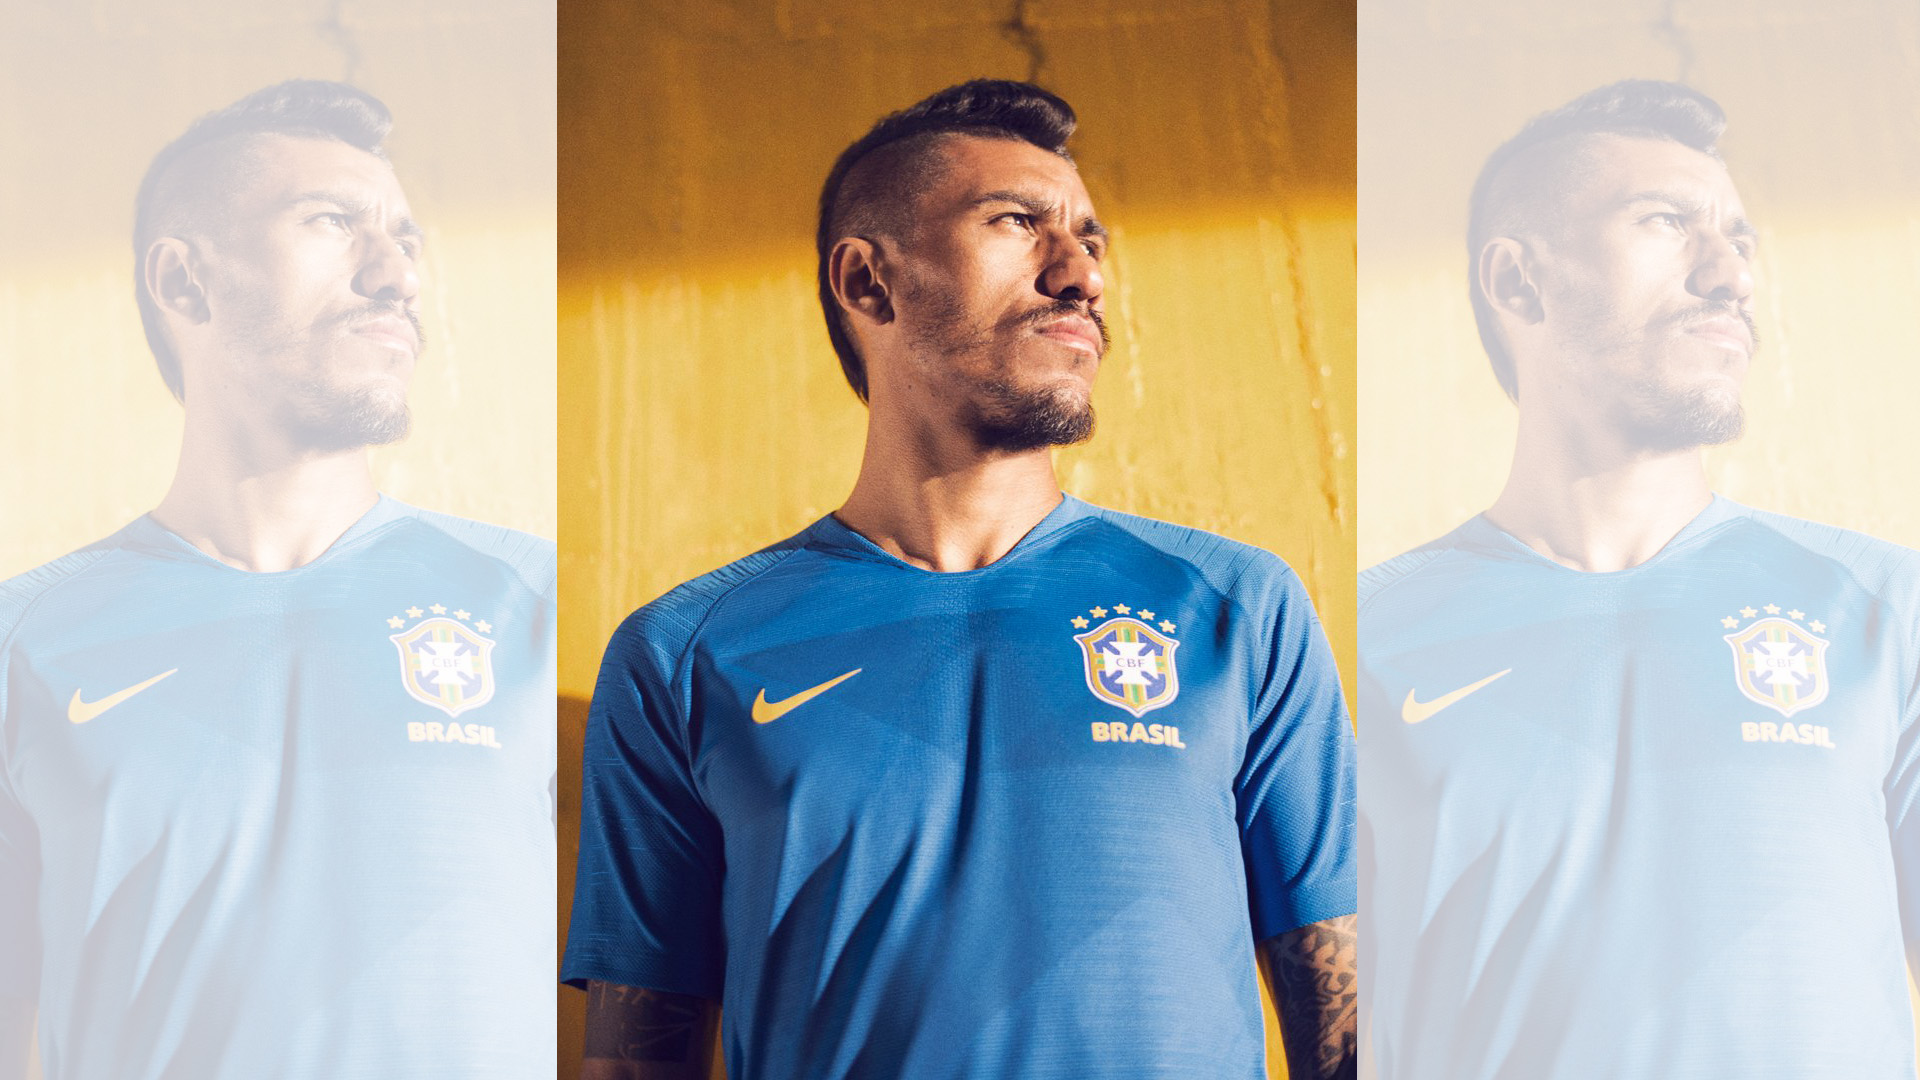 Brasil Camiseta Alternativa 2018 Brazil Away Kit c0f6d1b1544